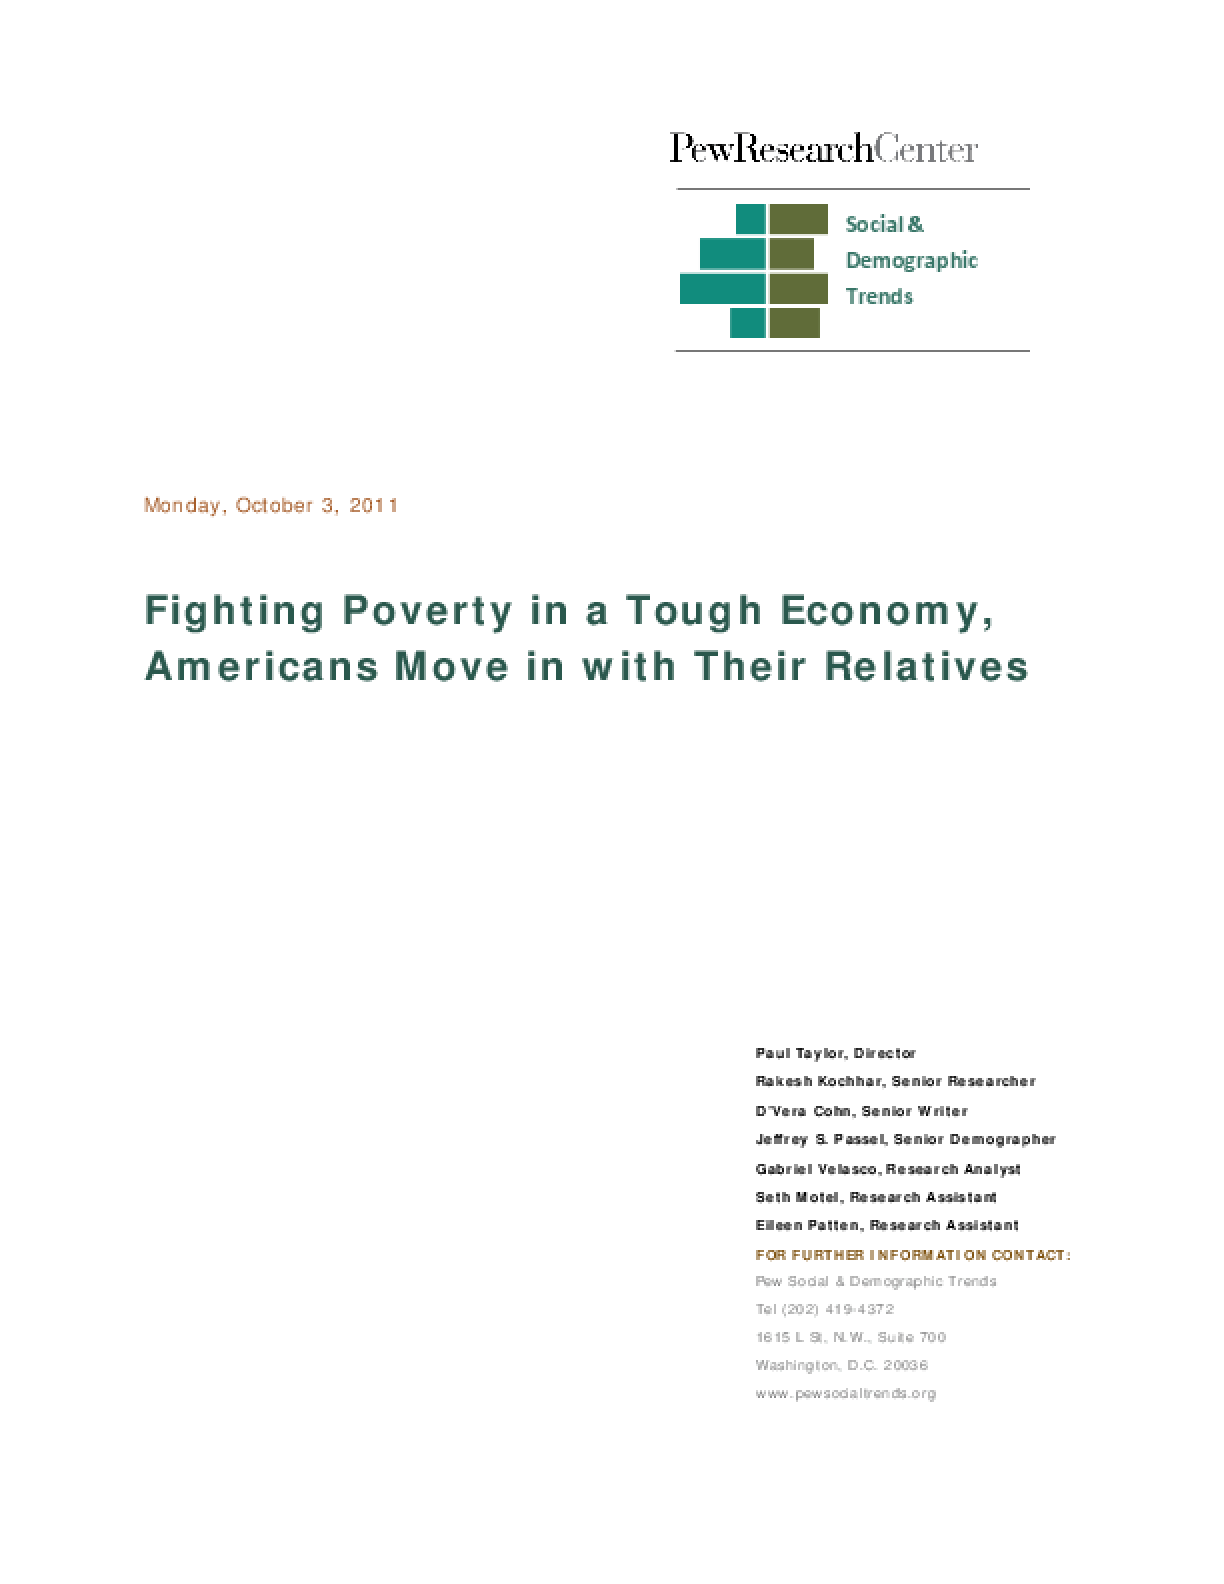 Fighting Poverty in a Bad Economy, Americans Move In With Relatives